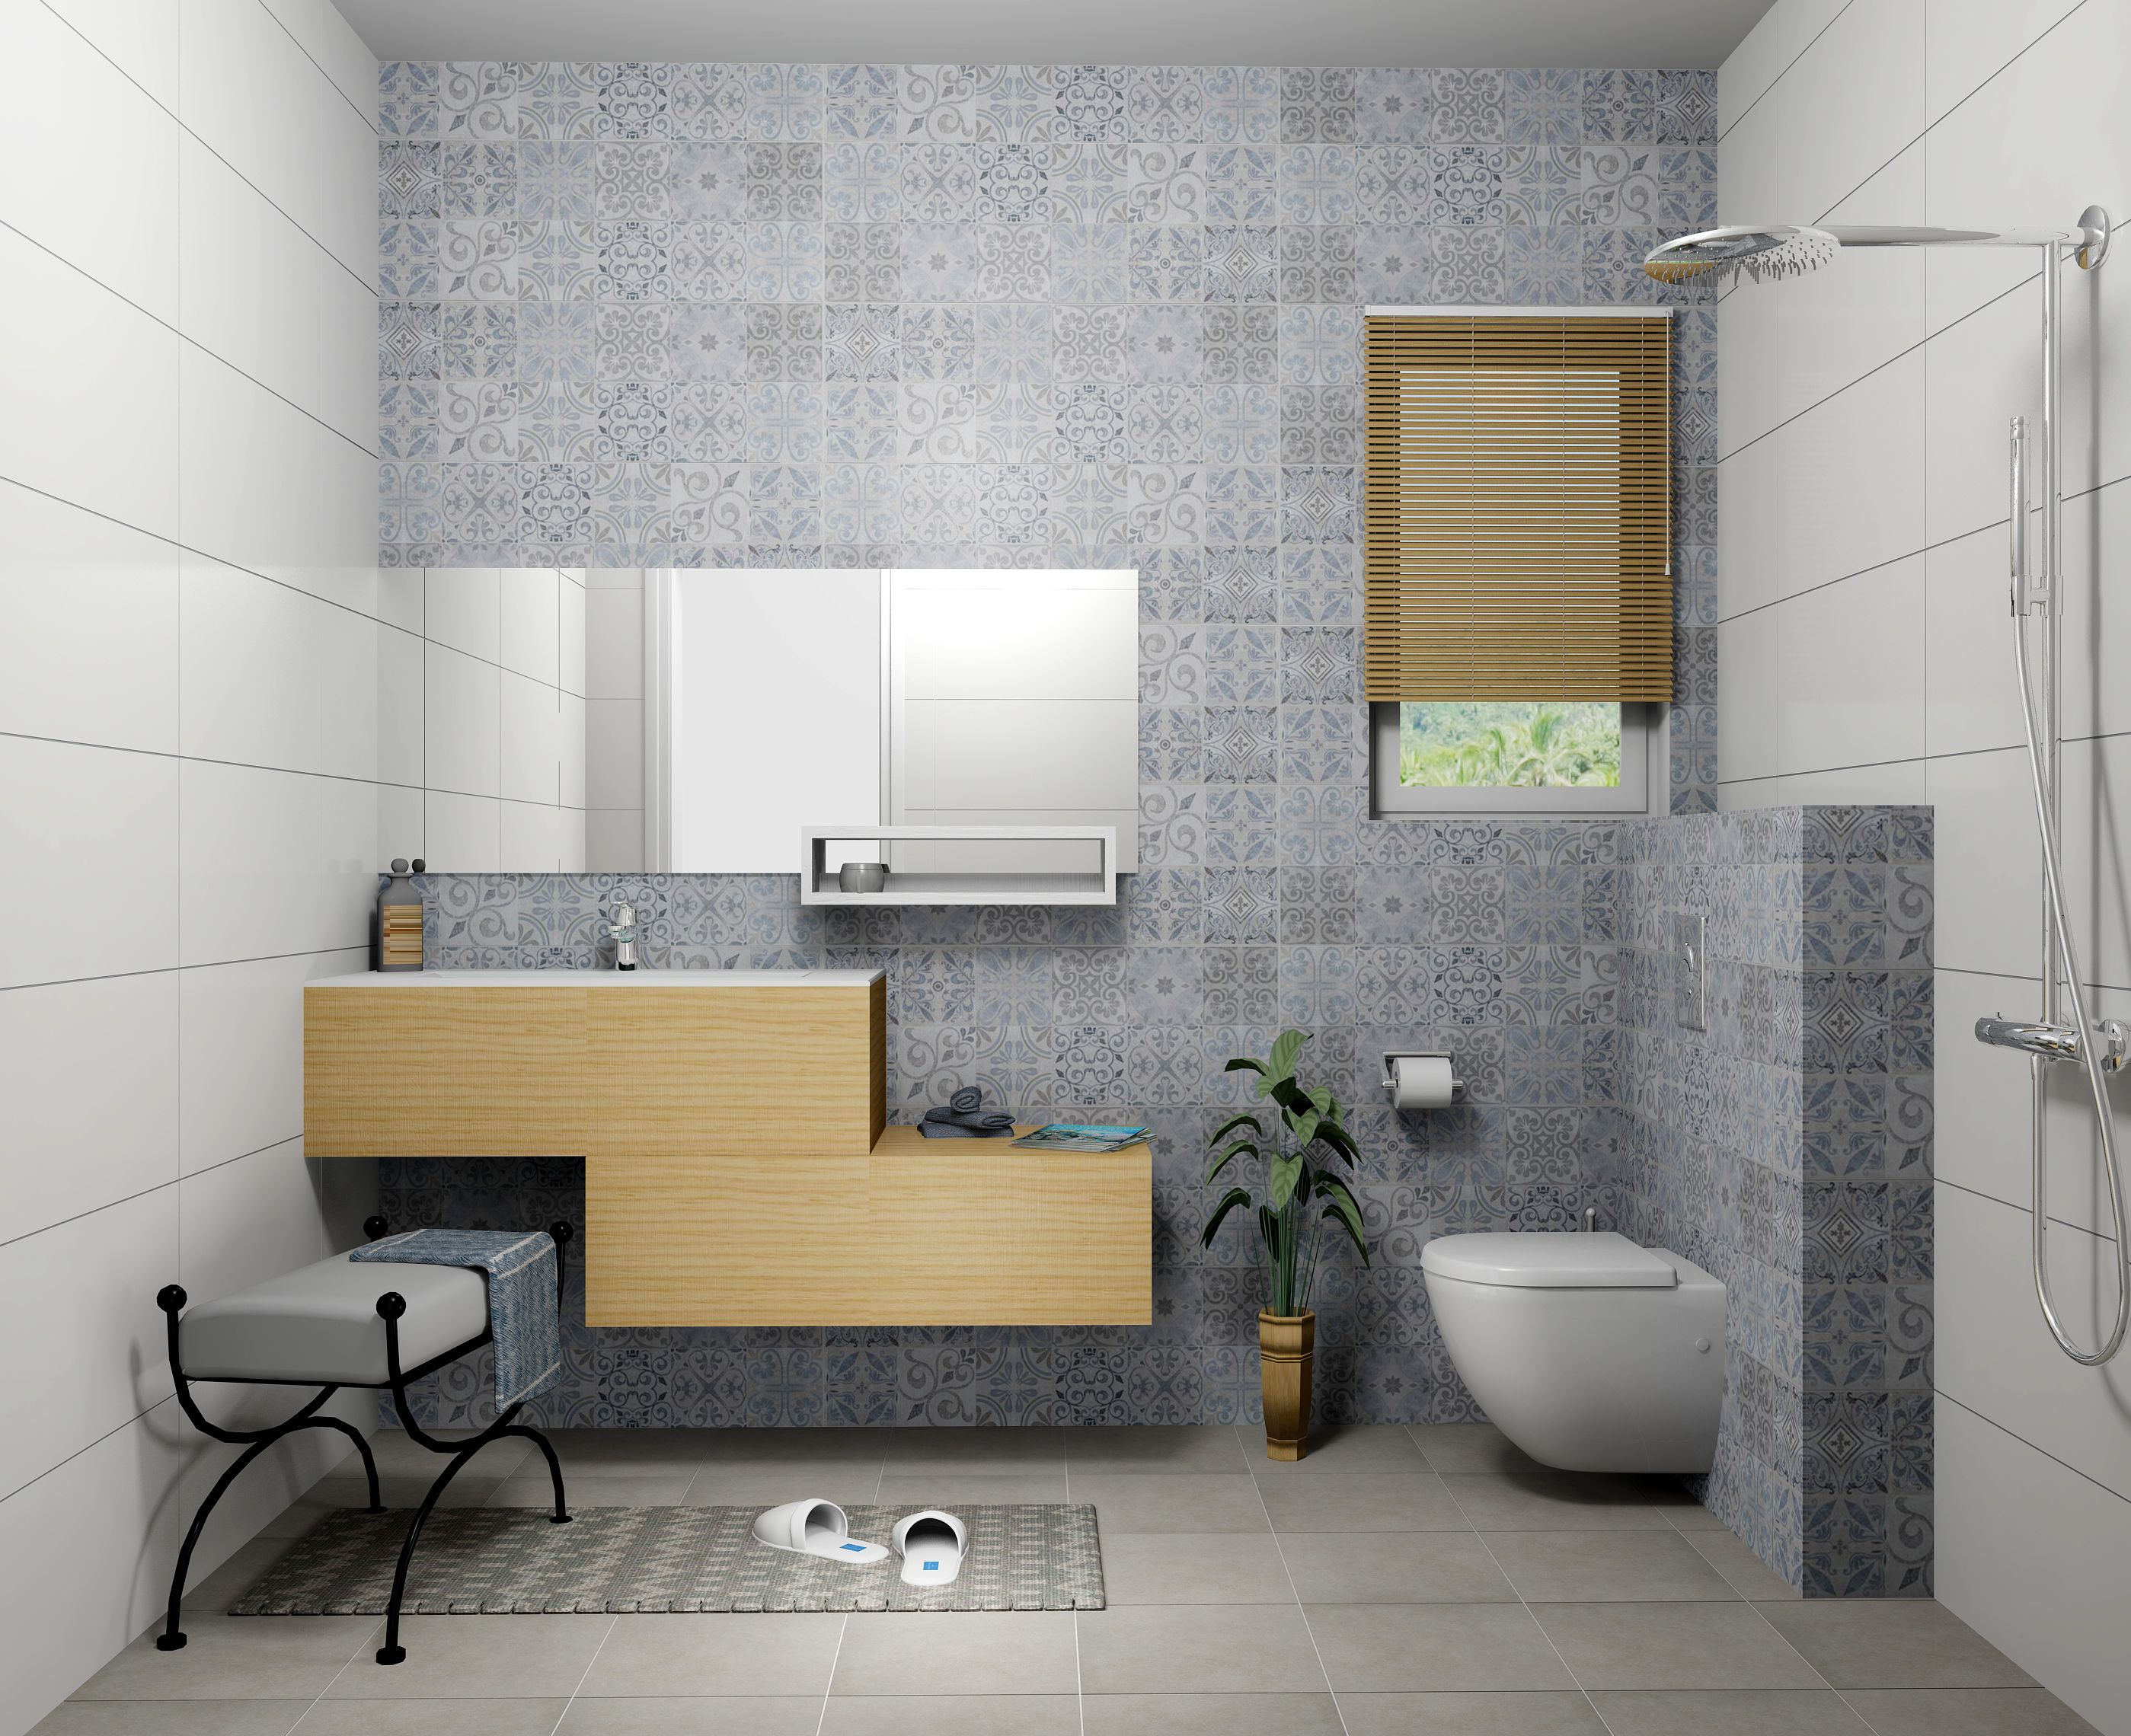 porcelanosa antique blue + concrete silver tiles. simulated